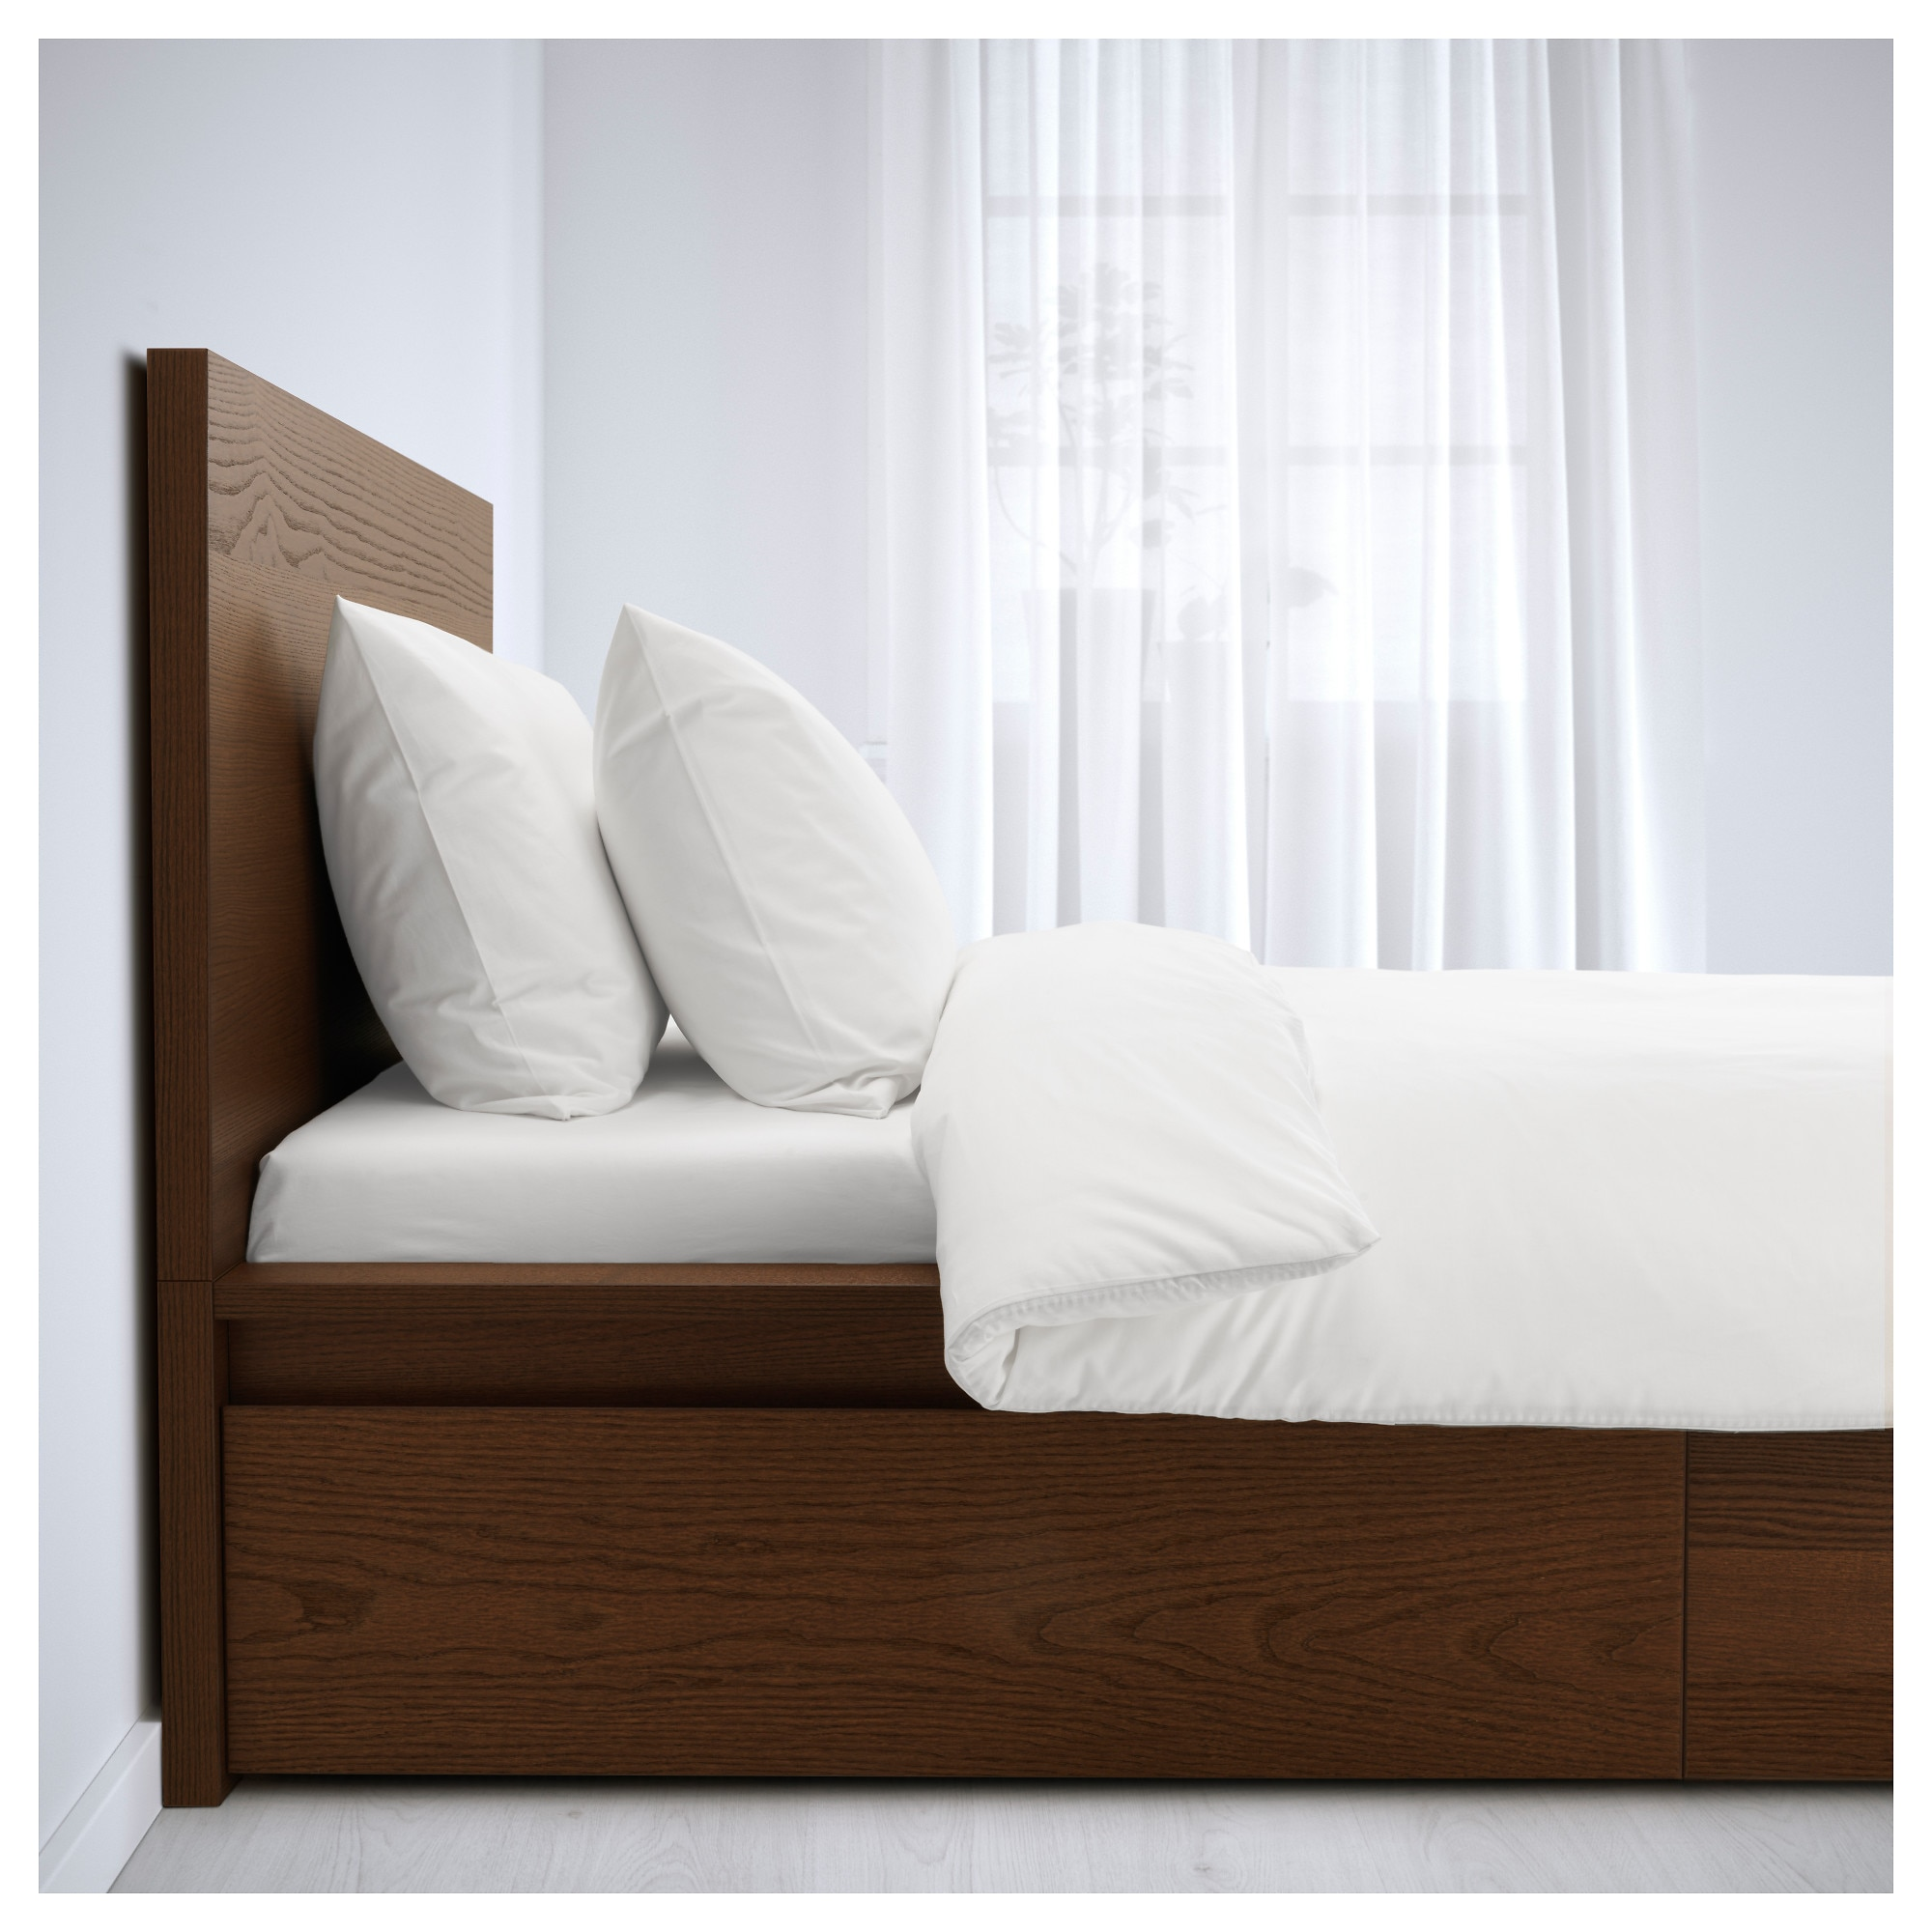 MALM High bed frame/2 storage boxes - Full/Double, - - IKEA